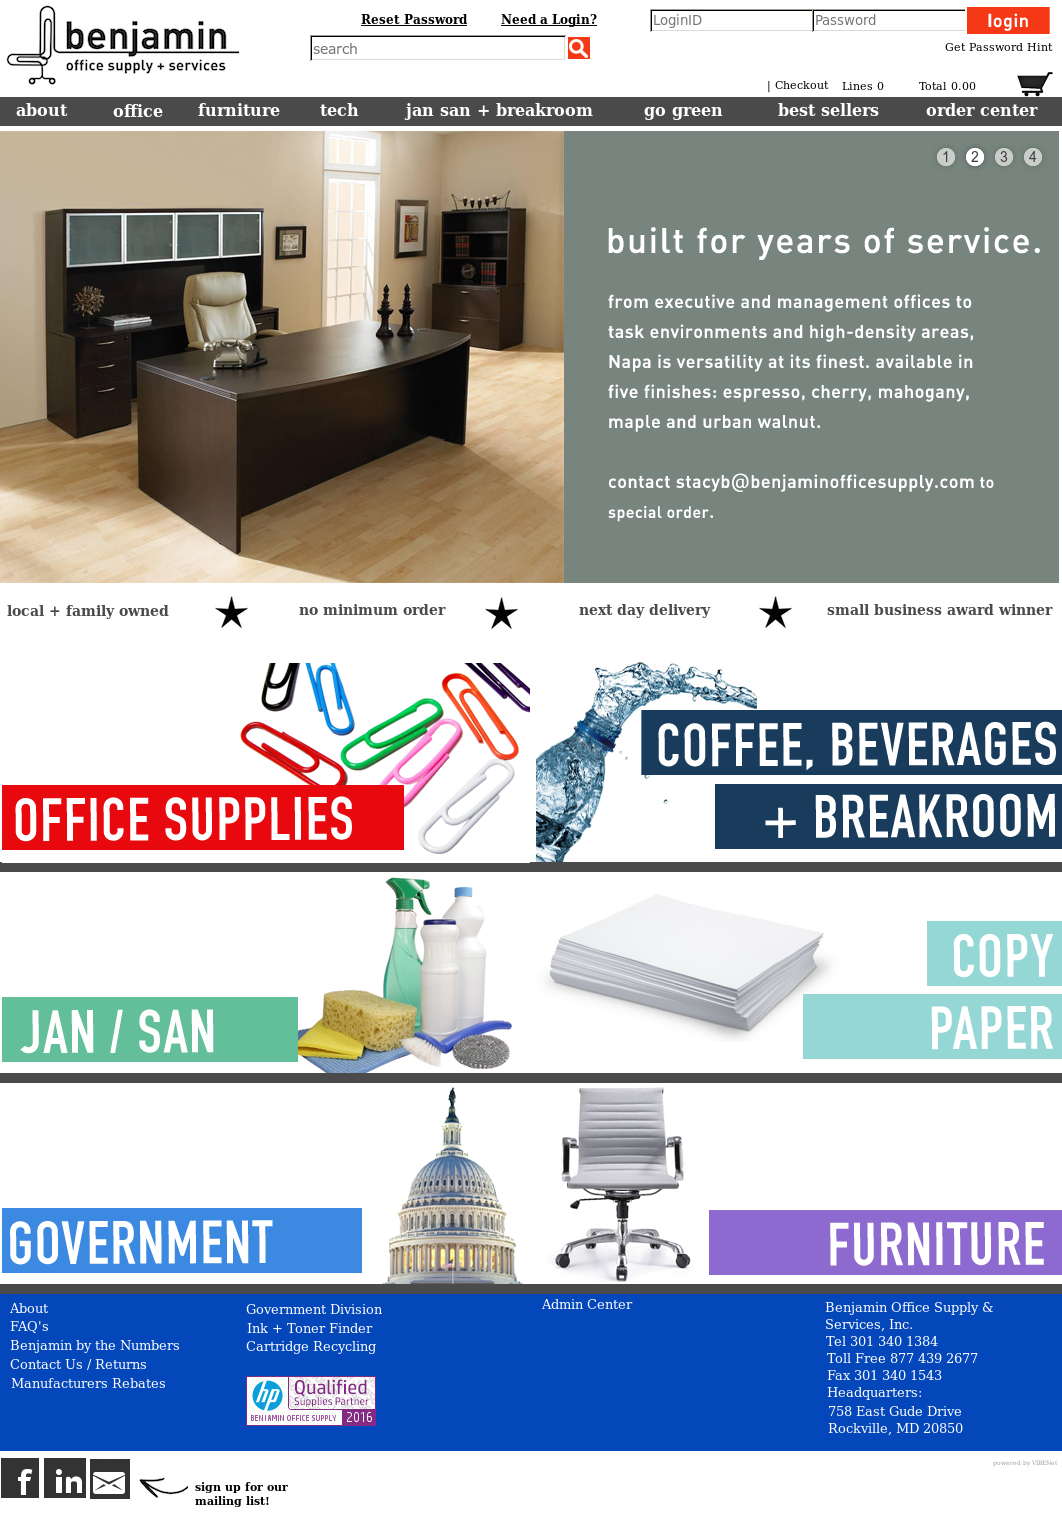 Exceptionnel Benjamin Office Supply U0026 Services Competitors, Revenue And Employees    Owler Company Profile